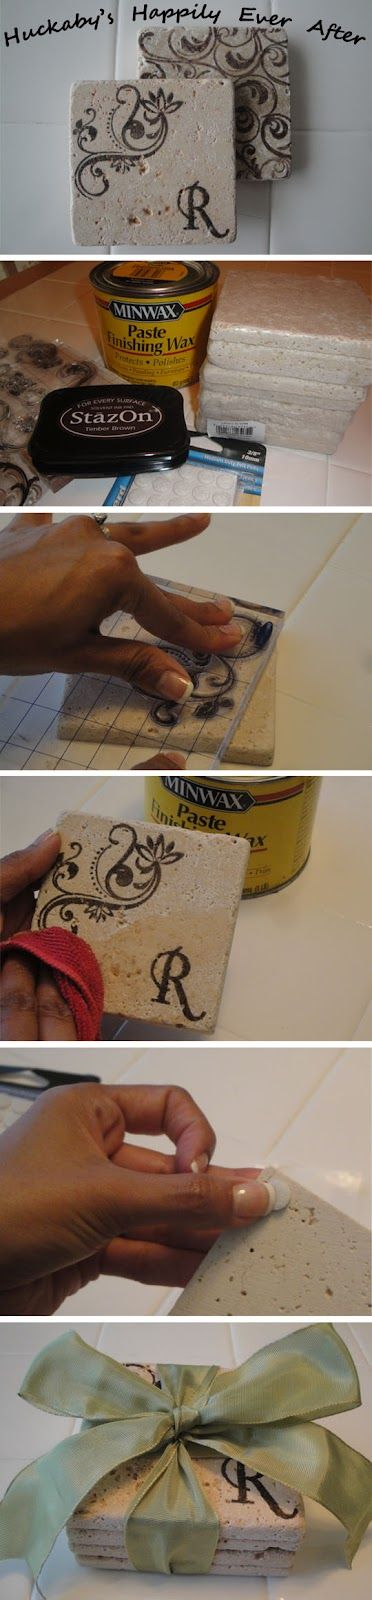 Instructions for stamping tiles to make into coasters! (tutorial about 1/3 down the page)